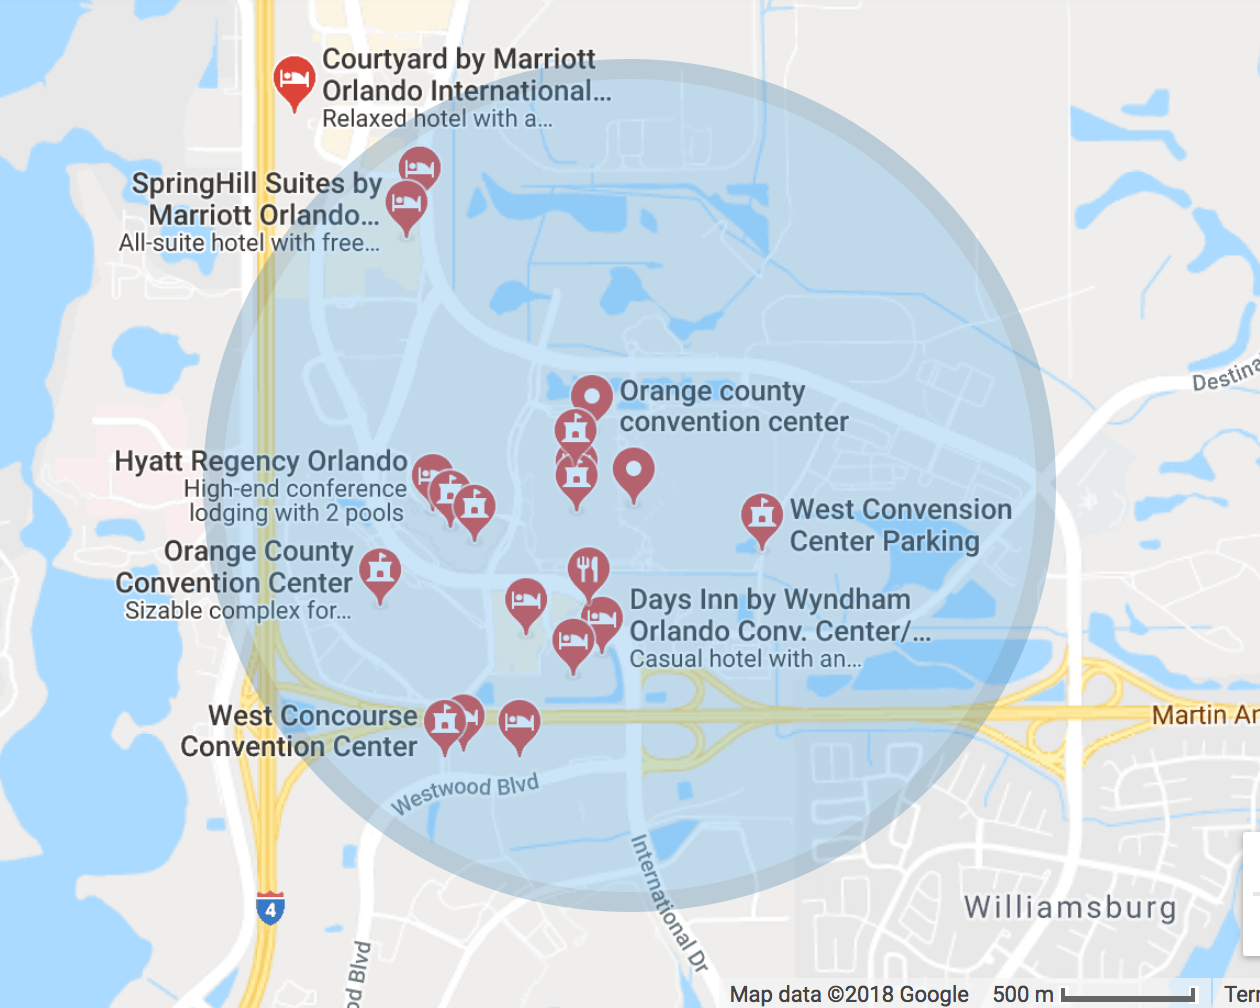 Modern Marketing Playbook: Geofencing